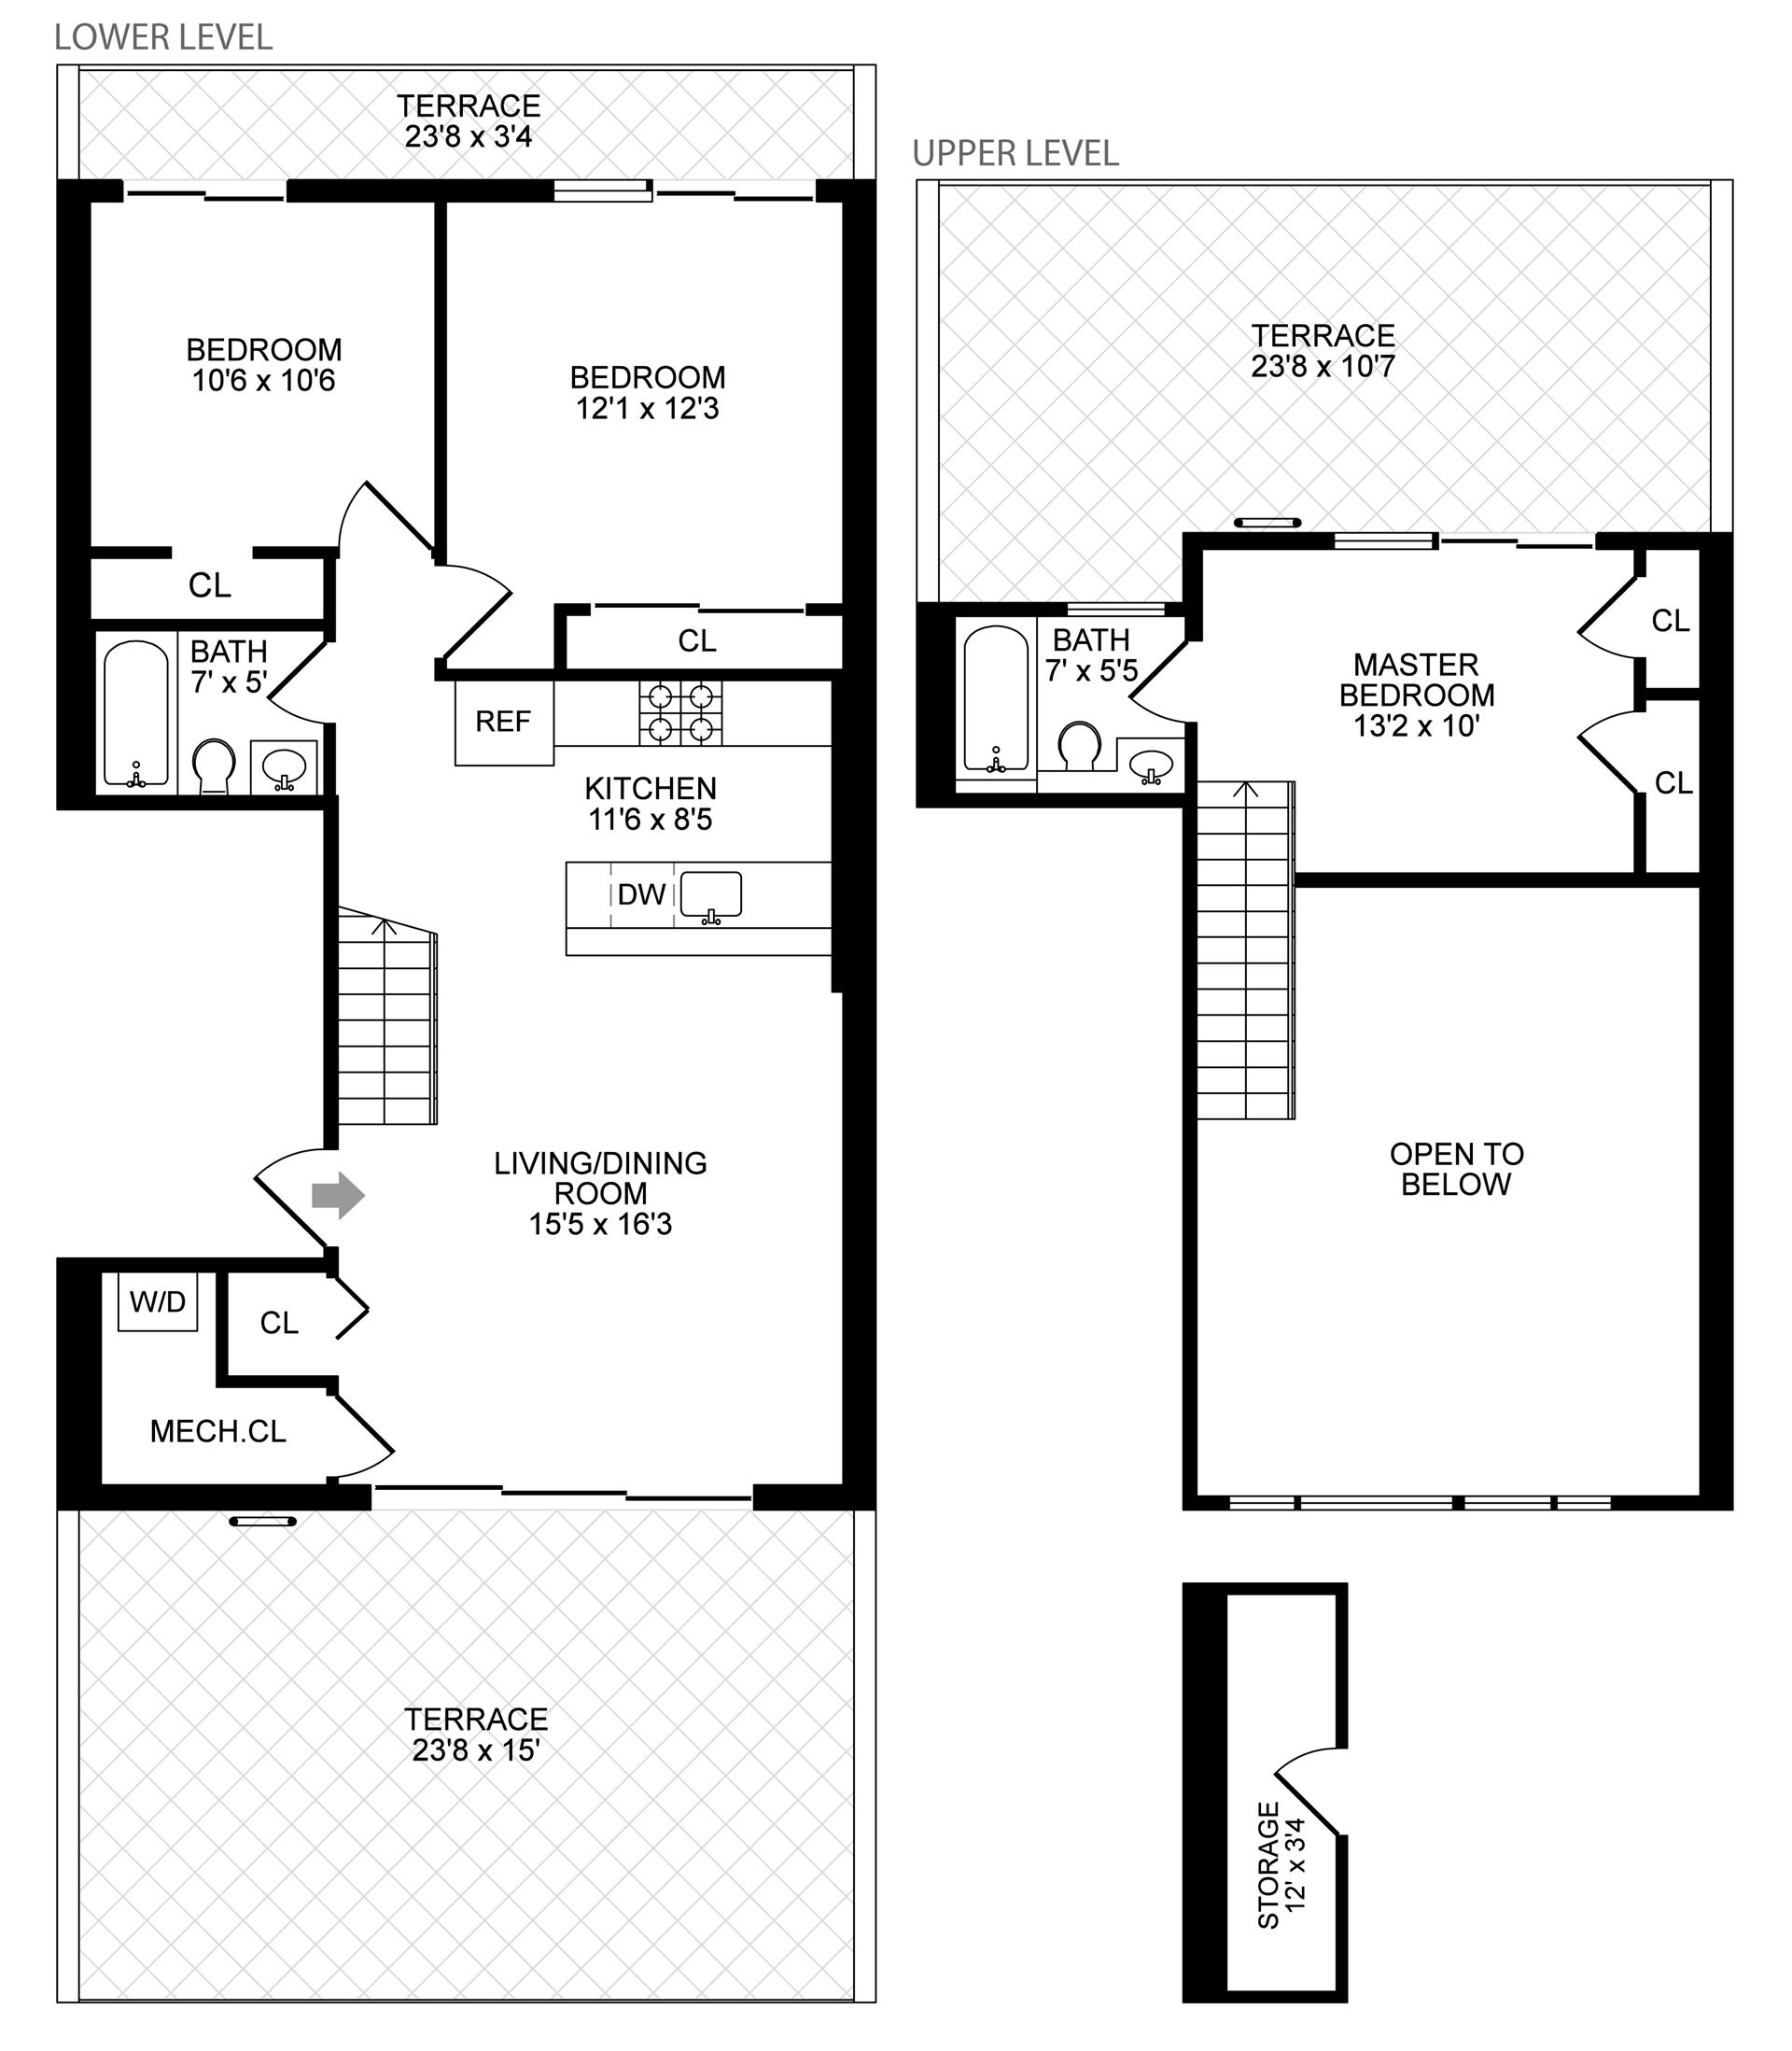 Floor plan of 251 Withers St, 4A - East Williamsburg, New York